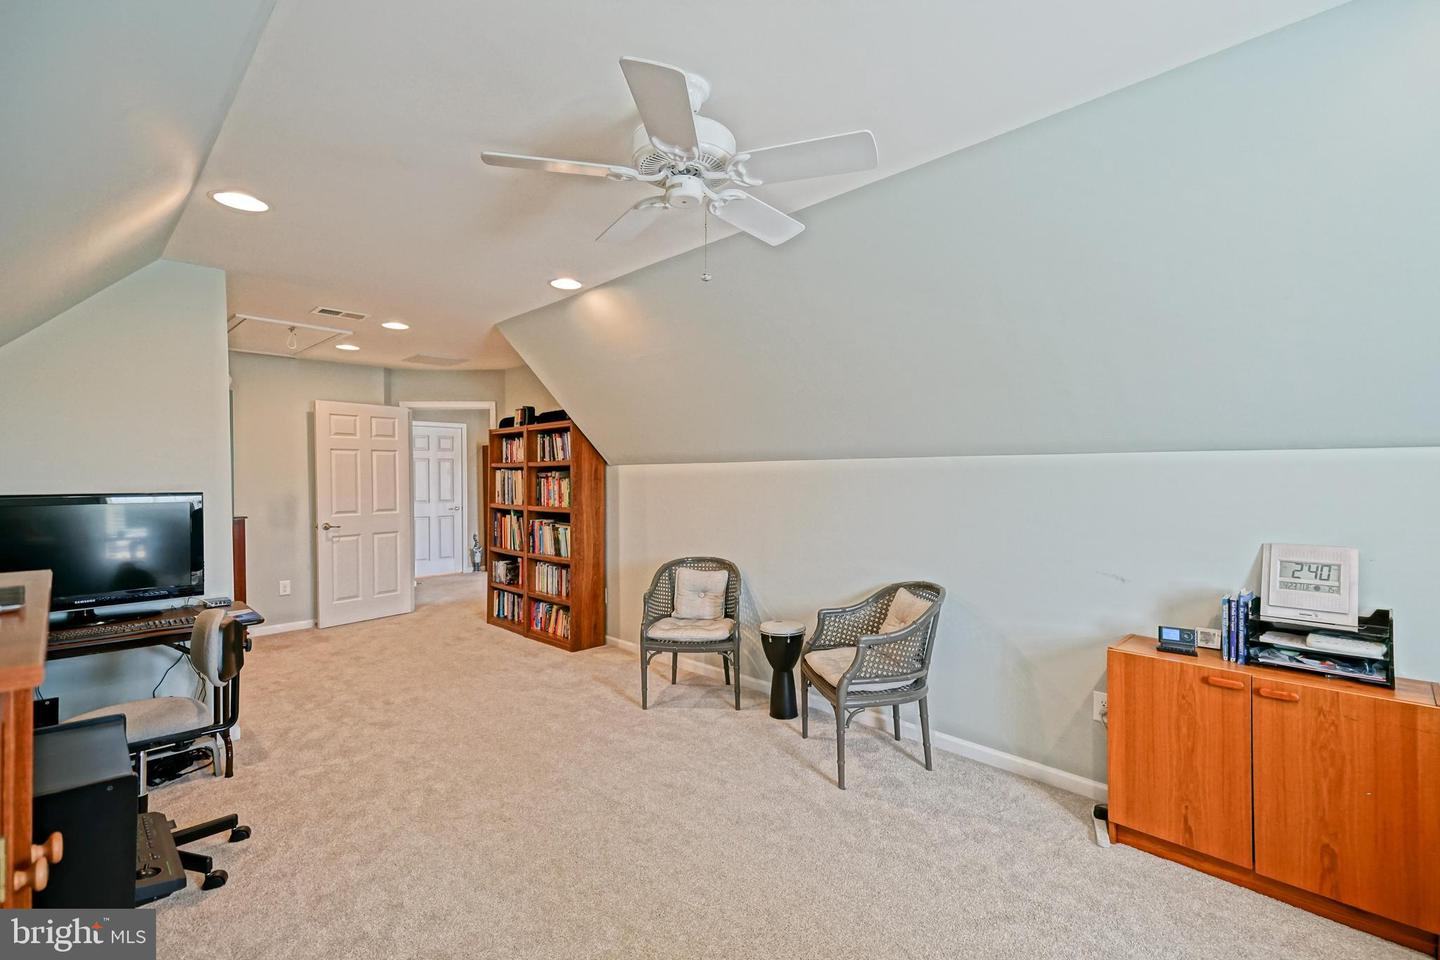 DESU139128-301667382903-2019-08-05-10-43-56 35222 Overfalls Dr N | Lewes, DE Real Estate For Sale | MLS# Desu139128  - Lee Ann Group